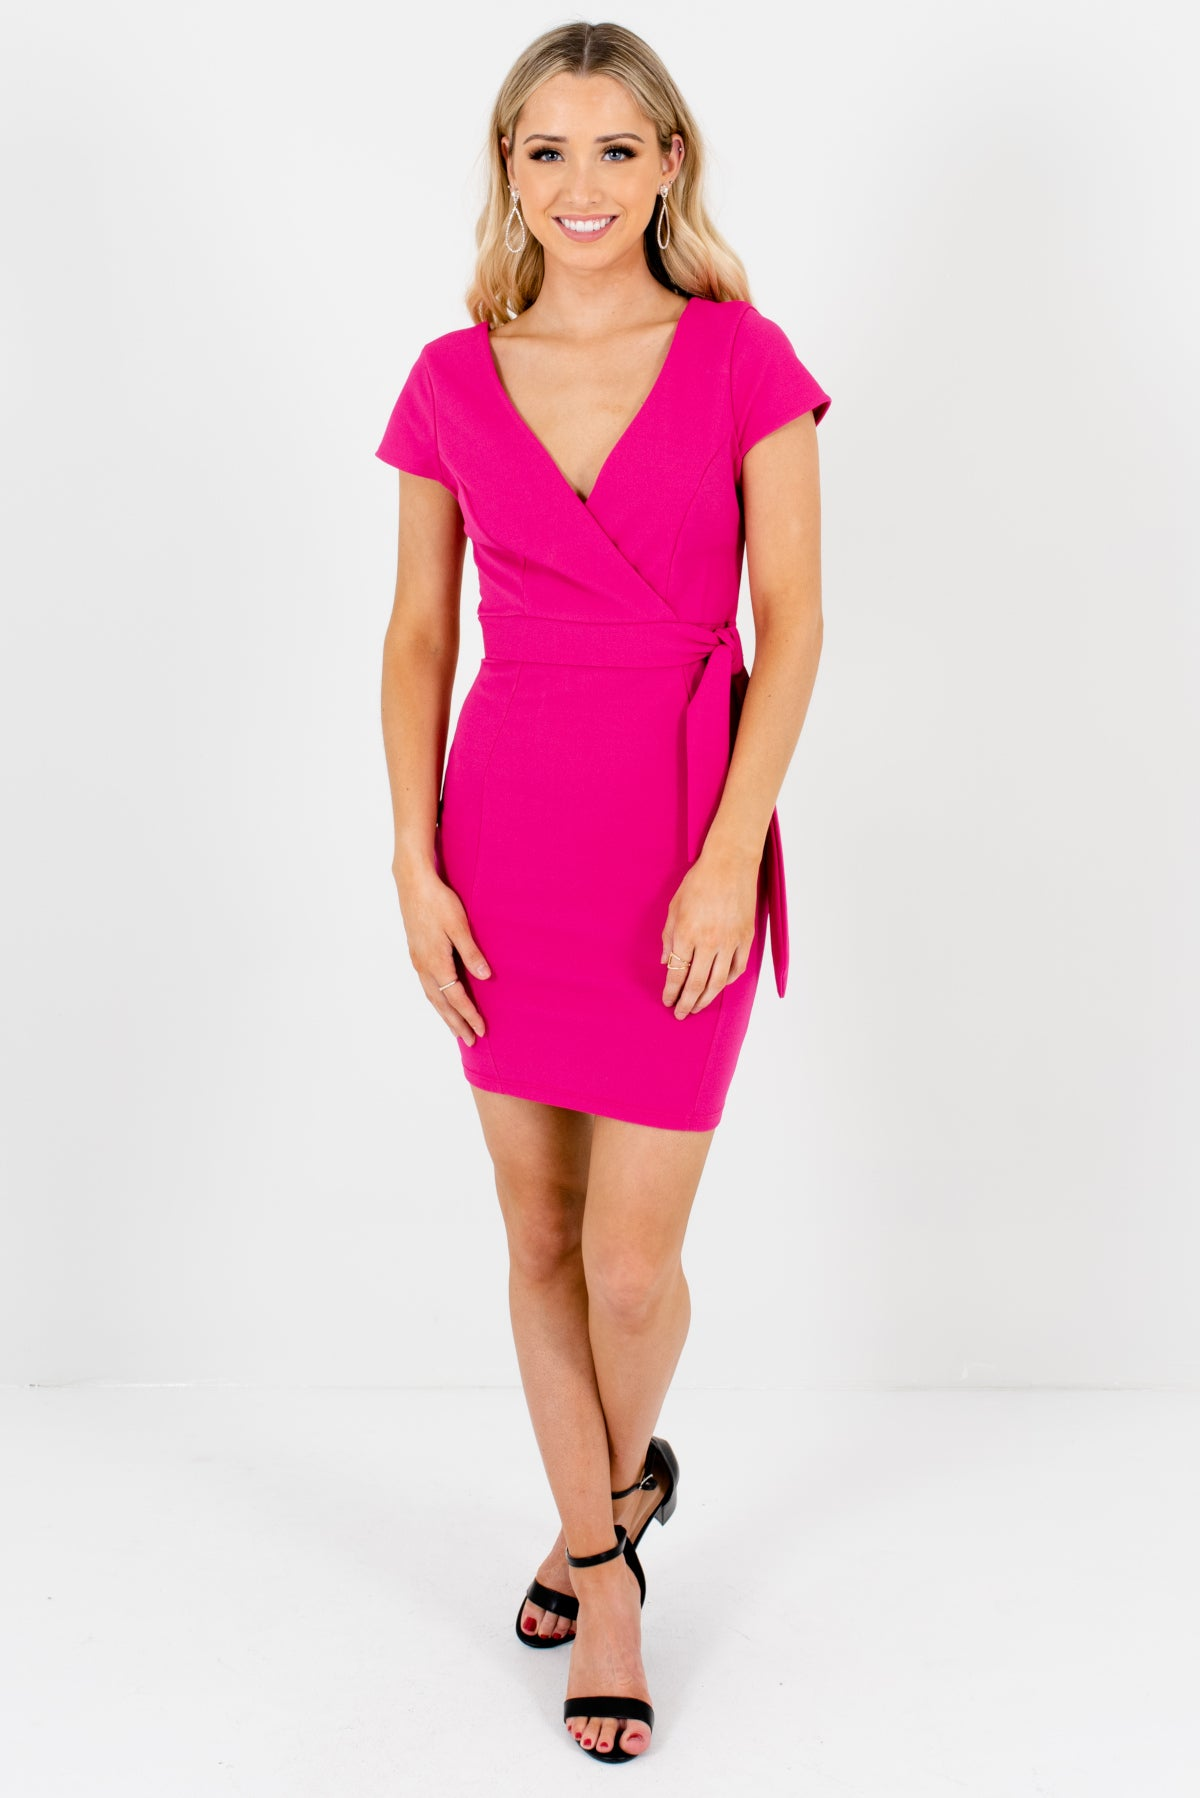 40e7d779bb6 Sweet Spot Fuchsia Pink Mini Dress | Boutique Mini Dresses